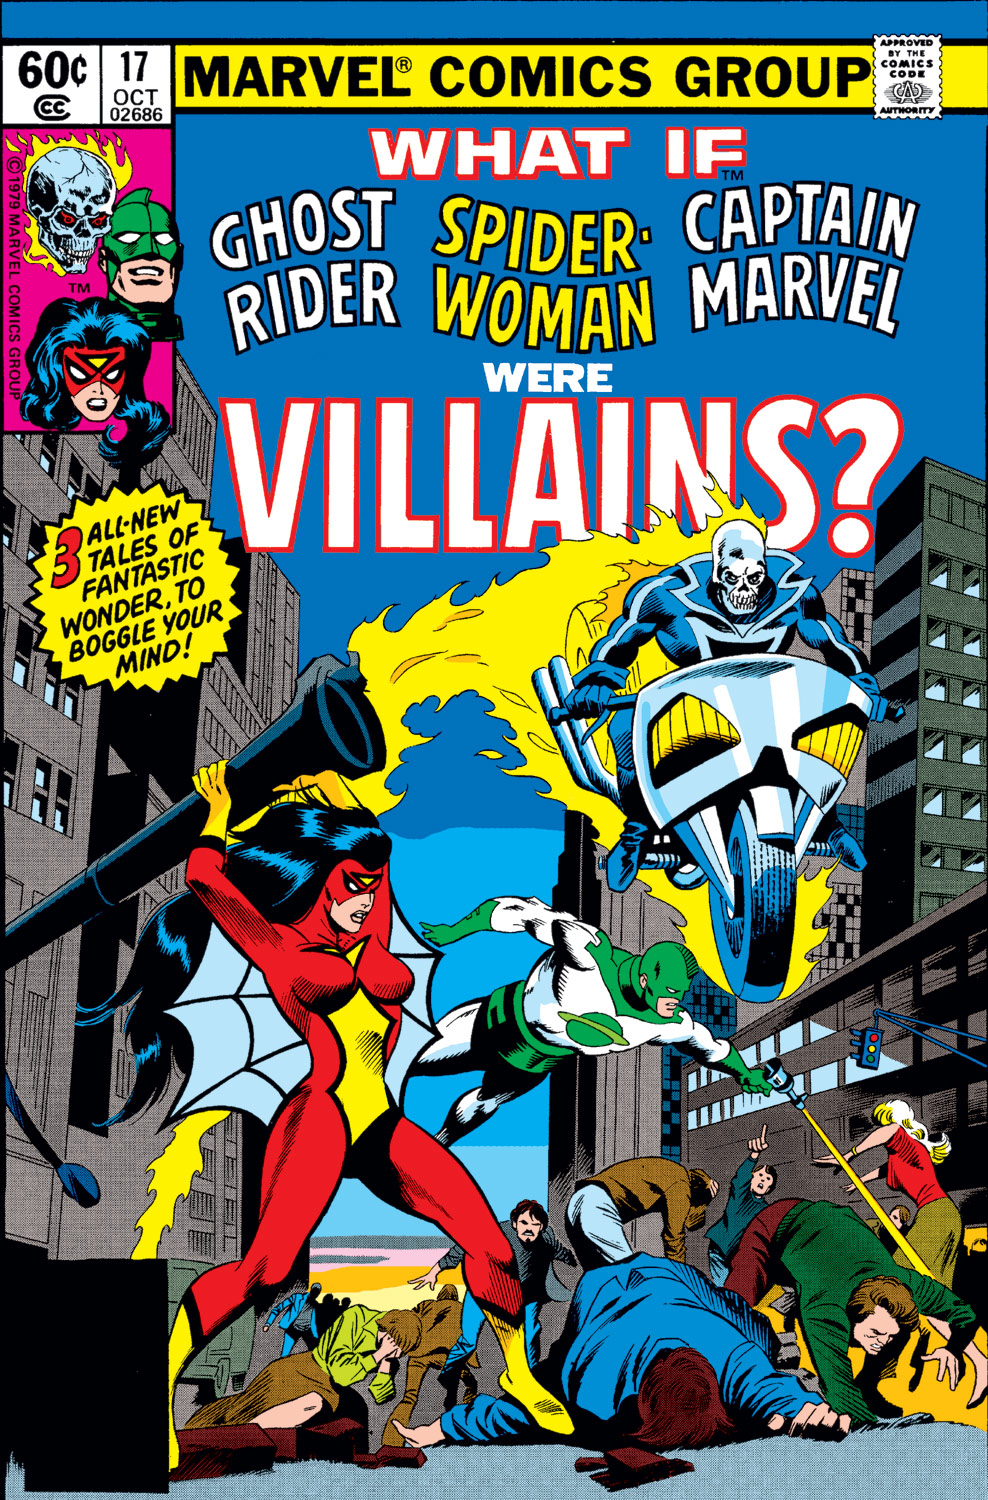 scans_daily | What If #17: Ghost Rider, Spider-Woman, & Captain Marvel were  villains